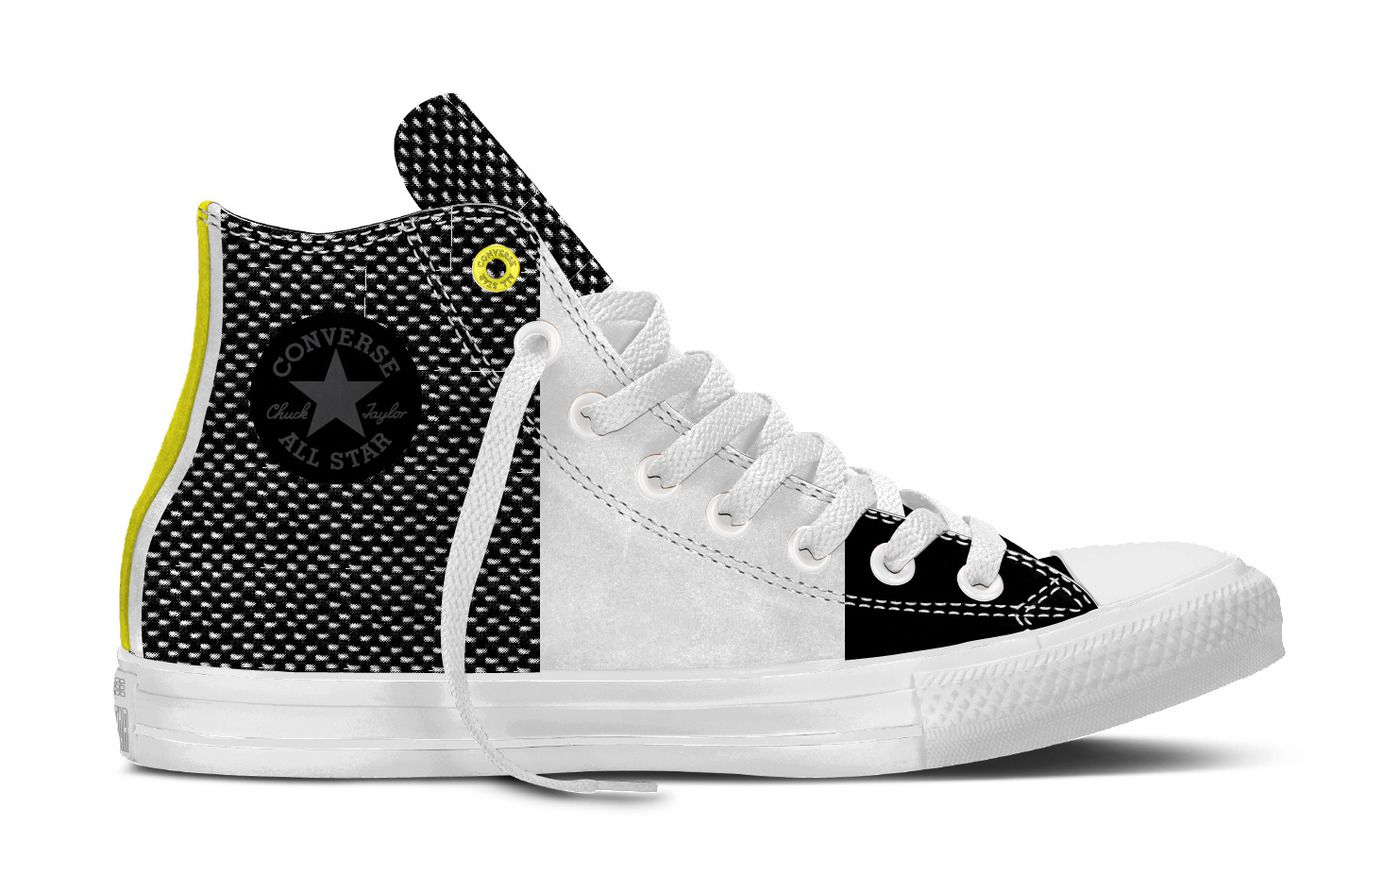 Chuck taylor all star II engineered woven